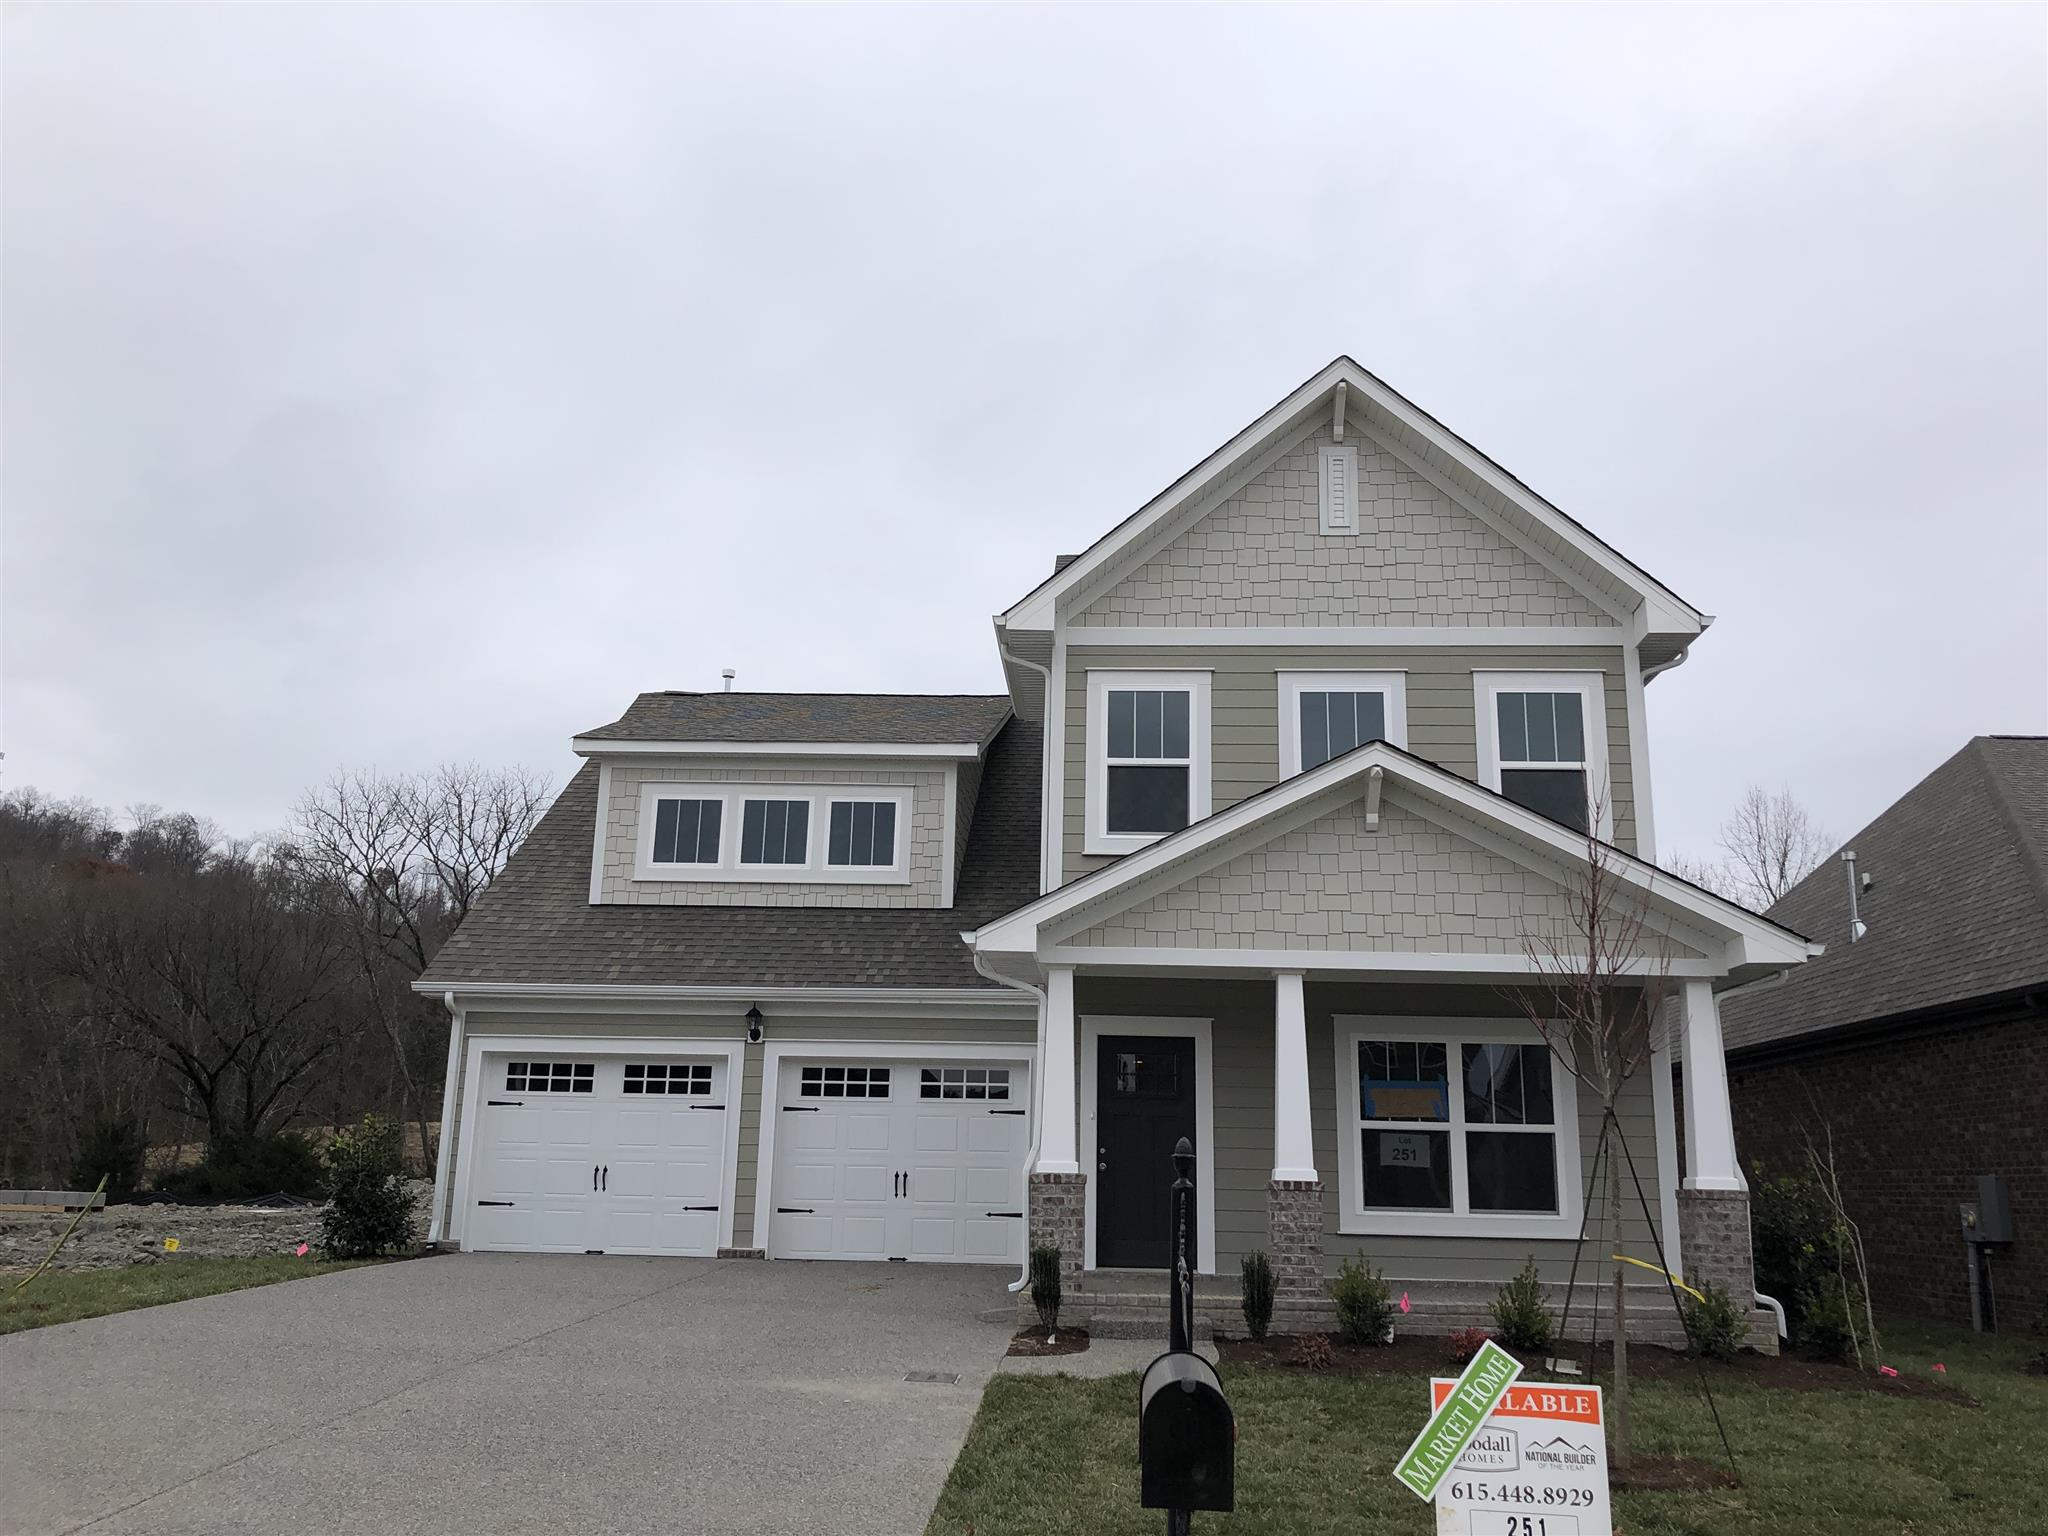 162 Monarchos Drive - Lot 251 37066 - One of Gallatin Homes for Sale